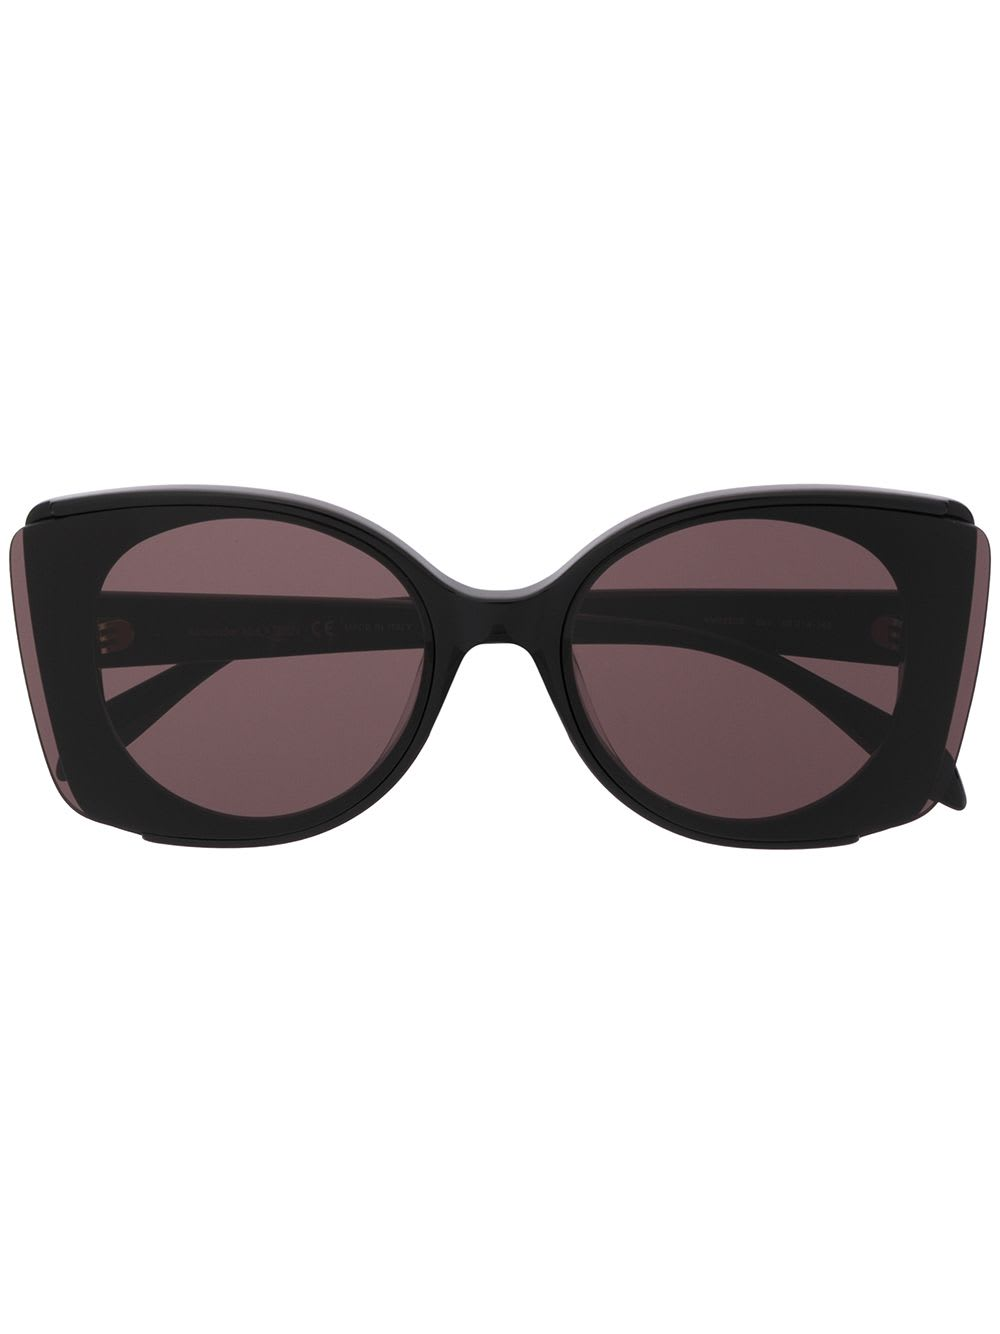 Sunglasses With Outstanding Lenses